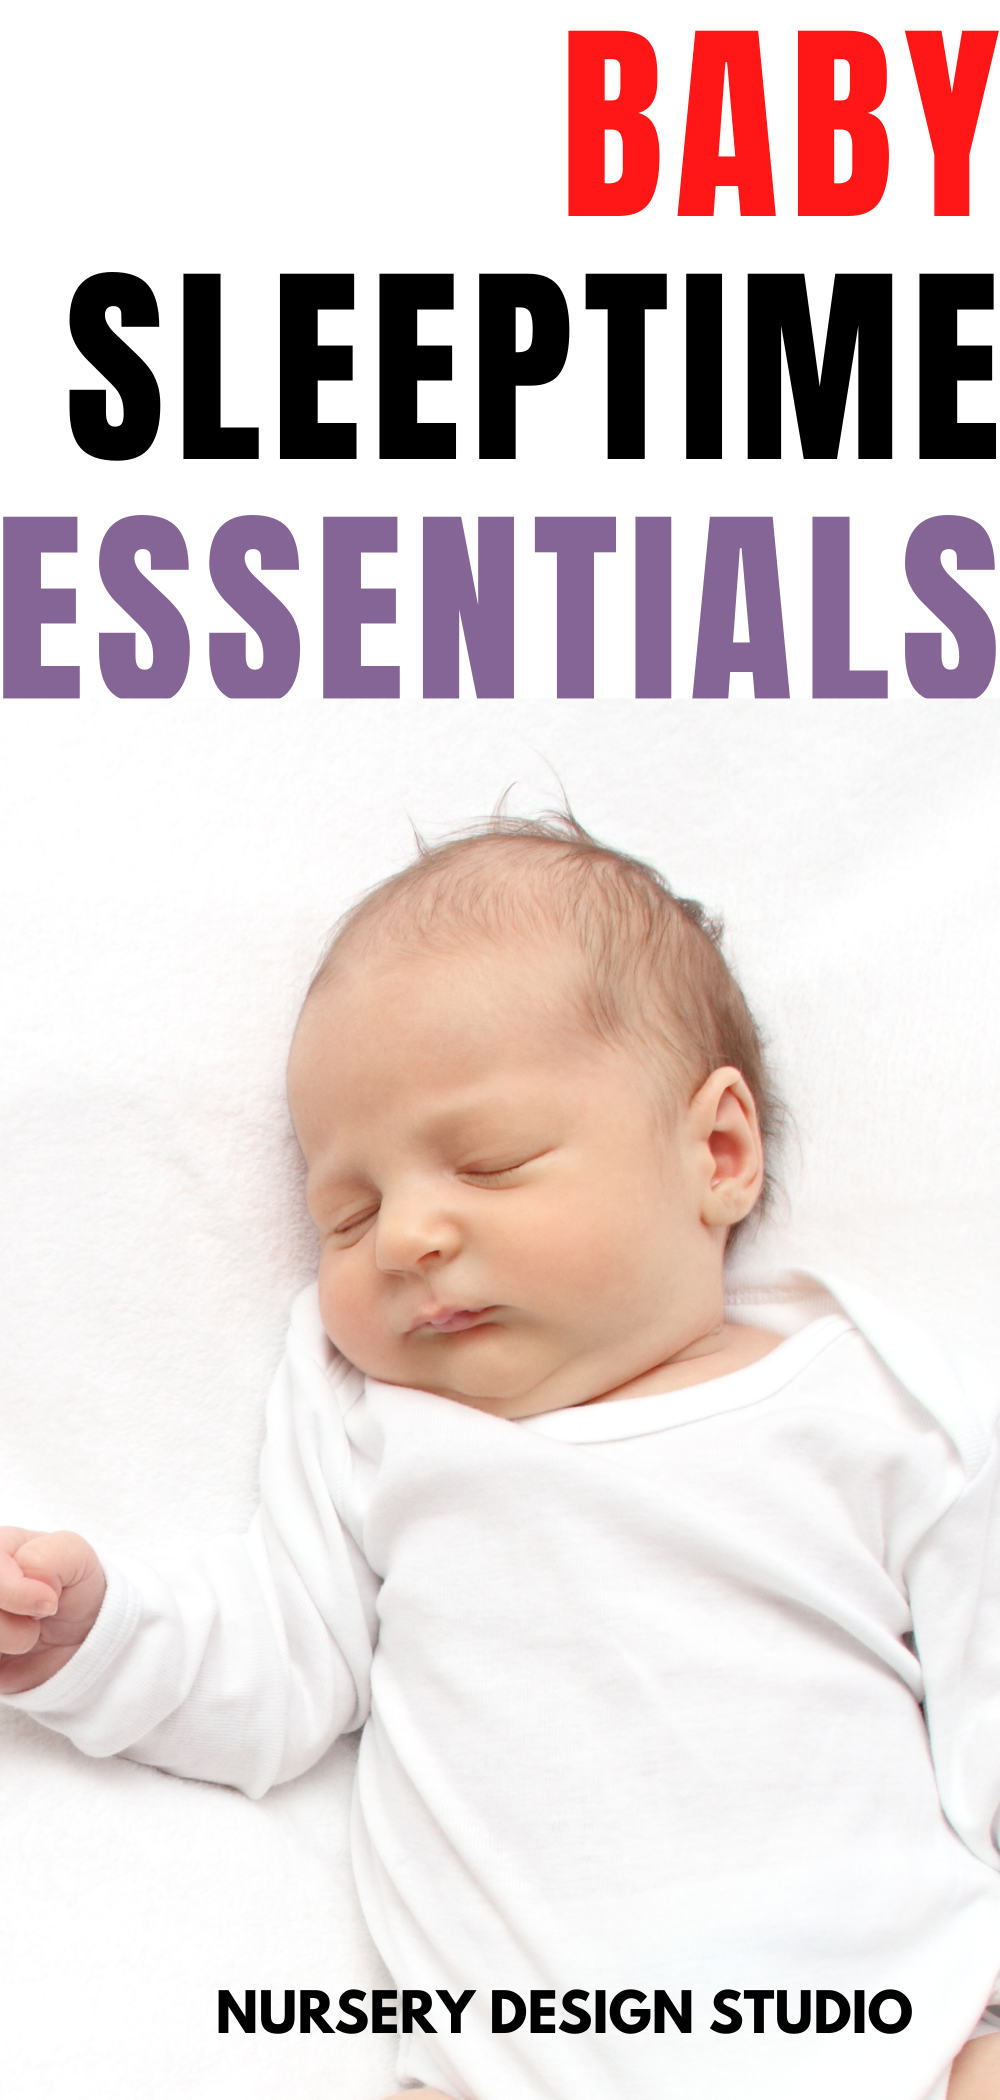 baby sleeptime essentials